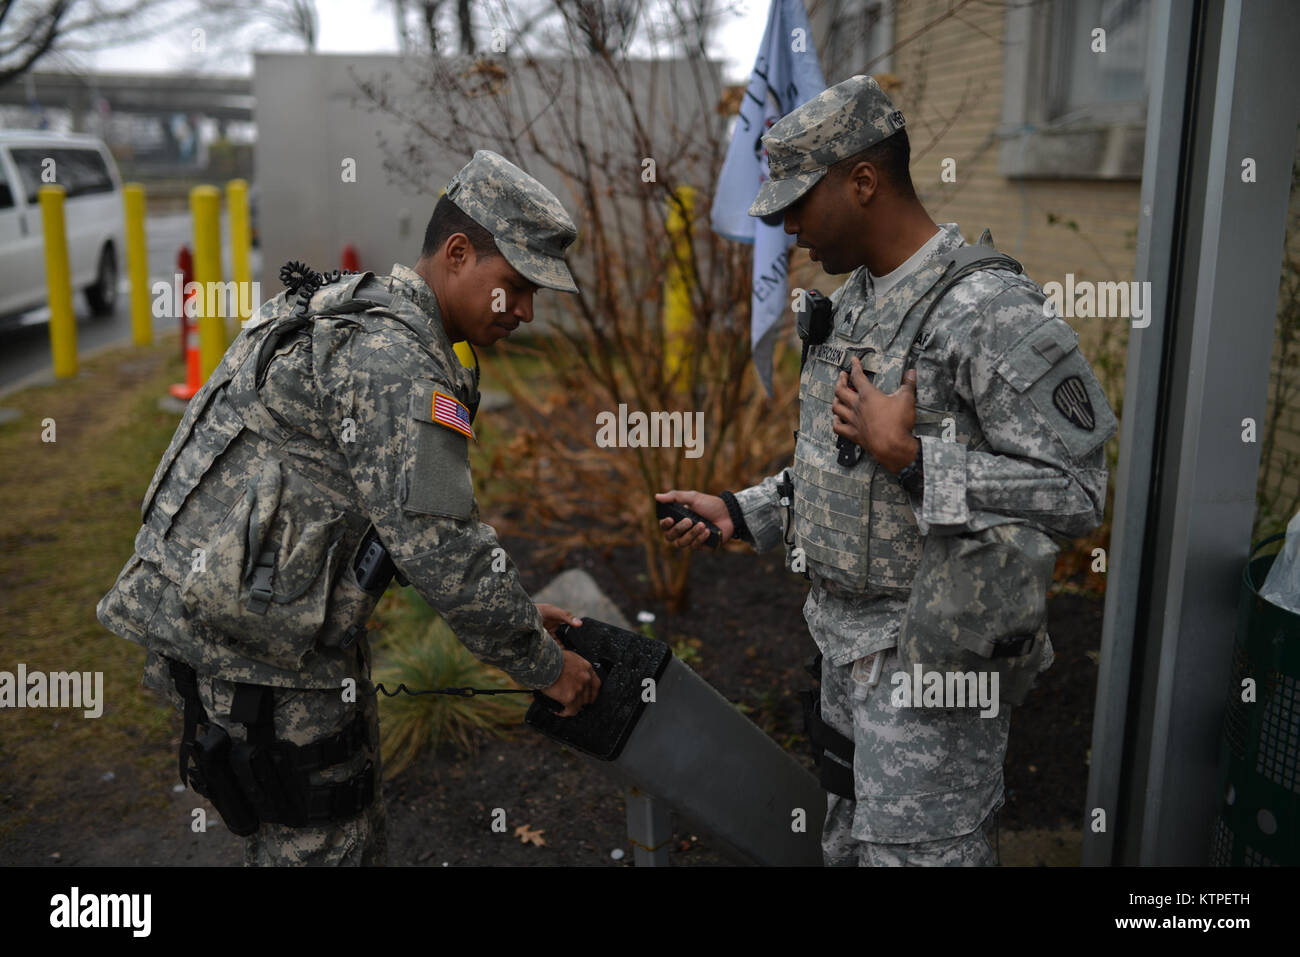 NEW YORK, NY - New York Air Servicemembers with Joint Task Force Empire Shield clear their weapons before leaving - Stock Image